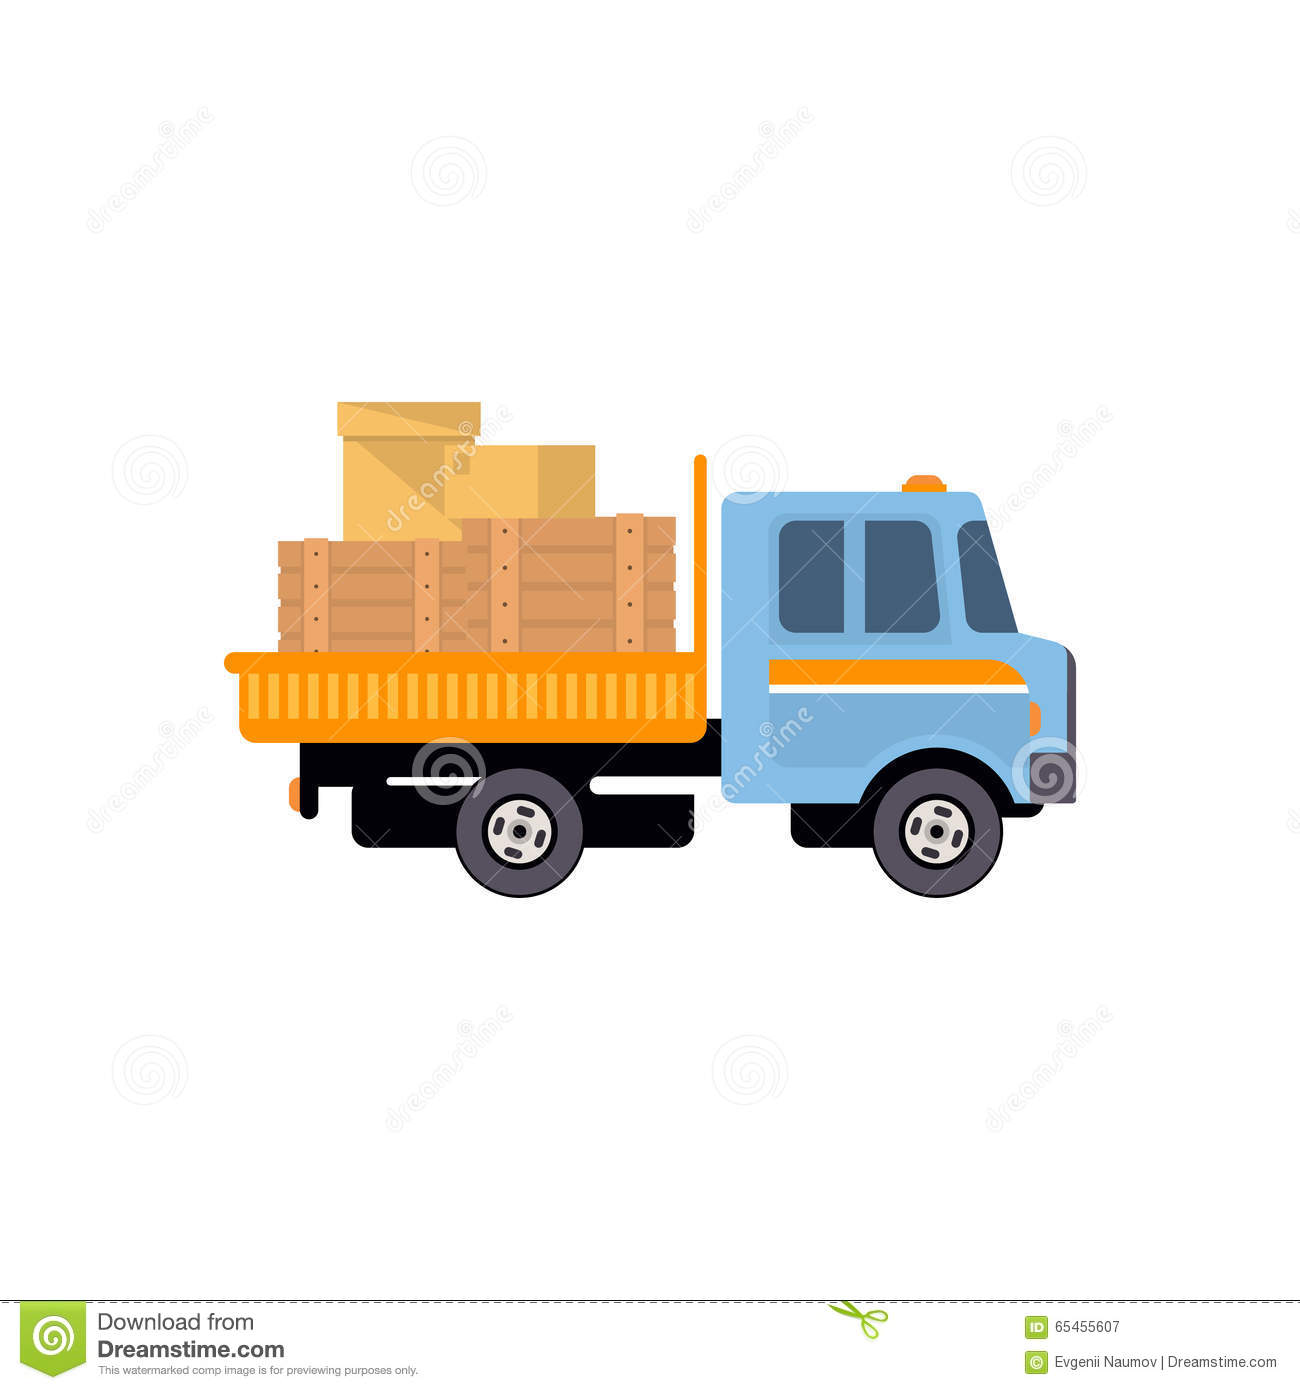 delivery truck icon vector - photo #20